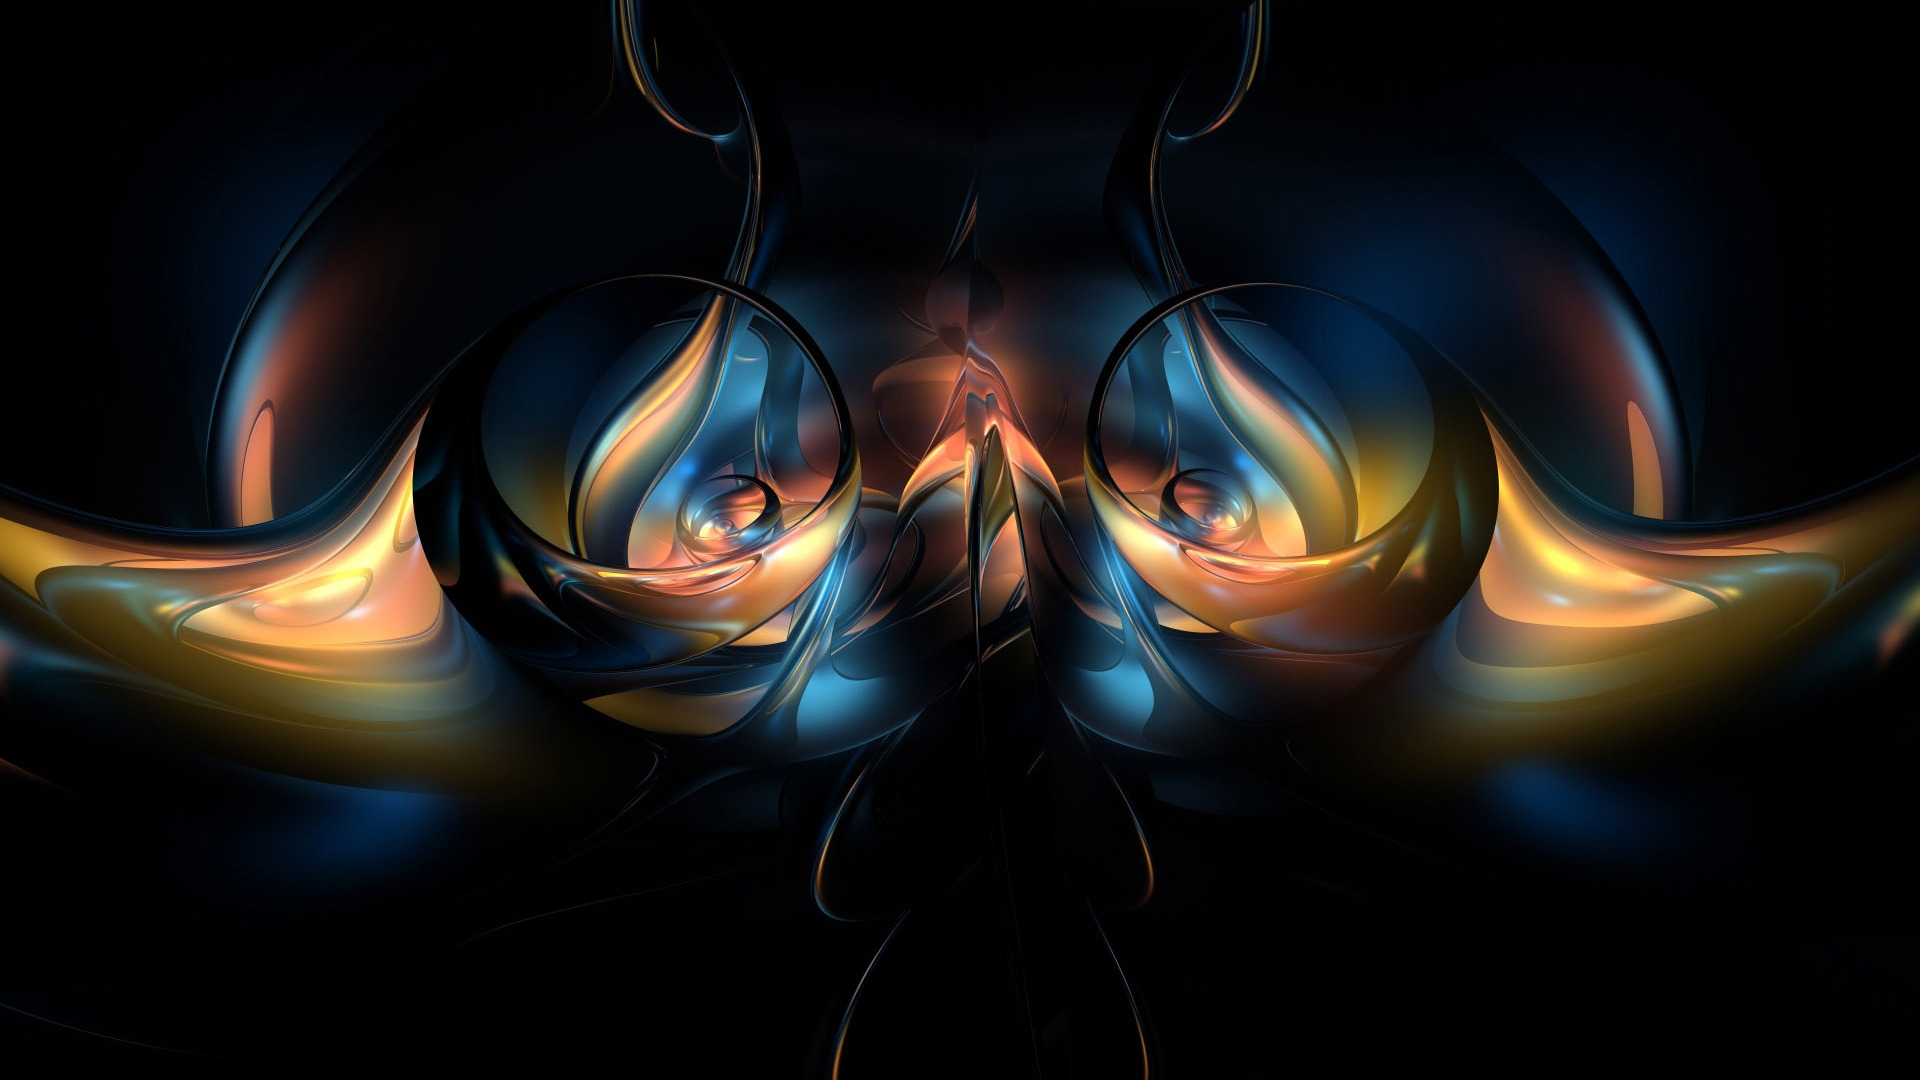 1920x1080 Abstract desktop PC and Mac wallpaper 1920x1080